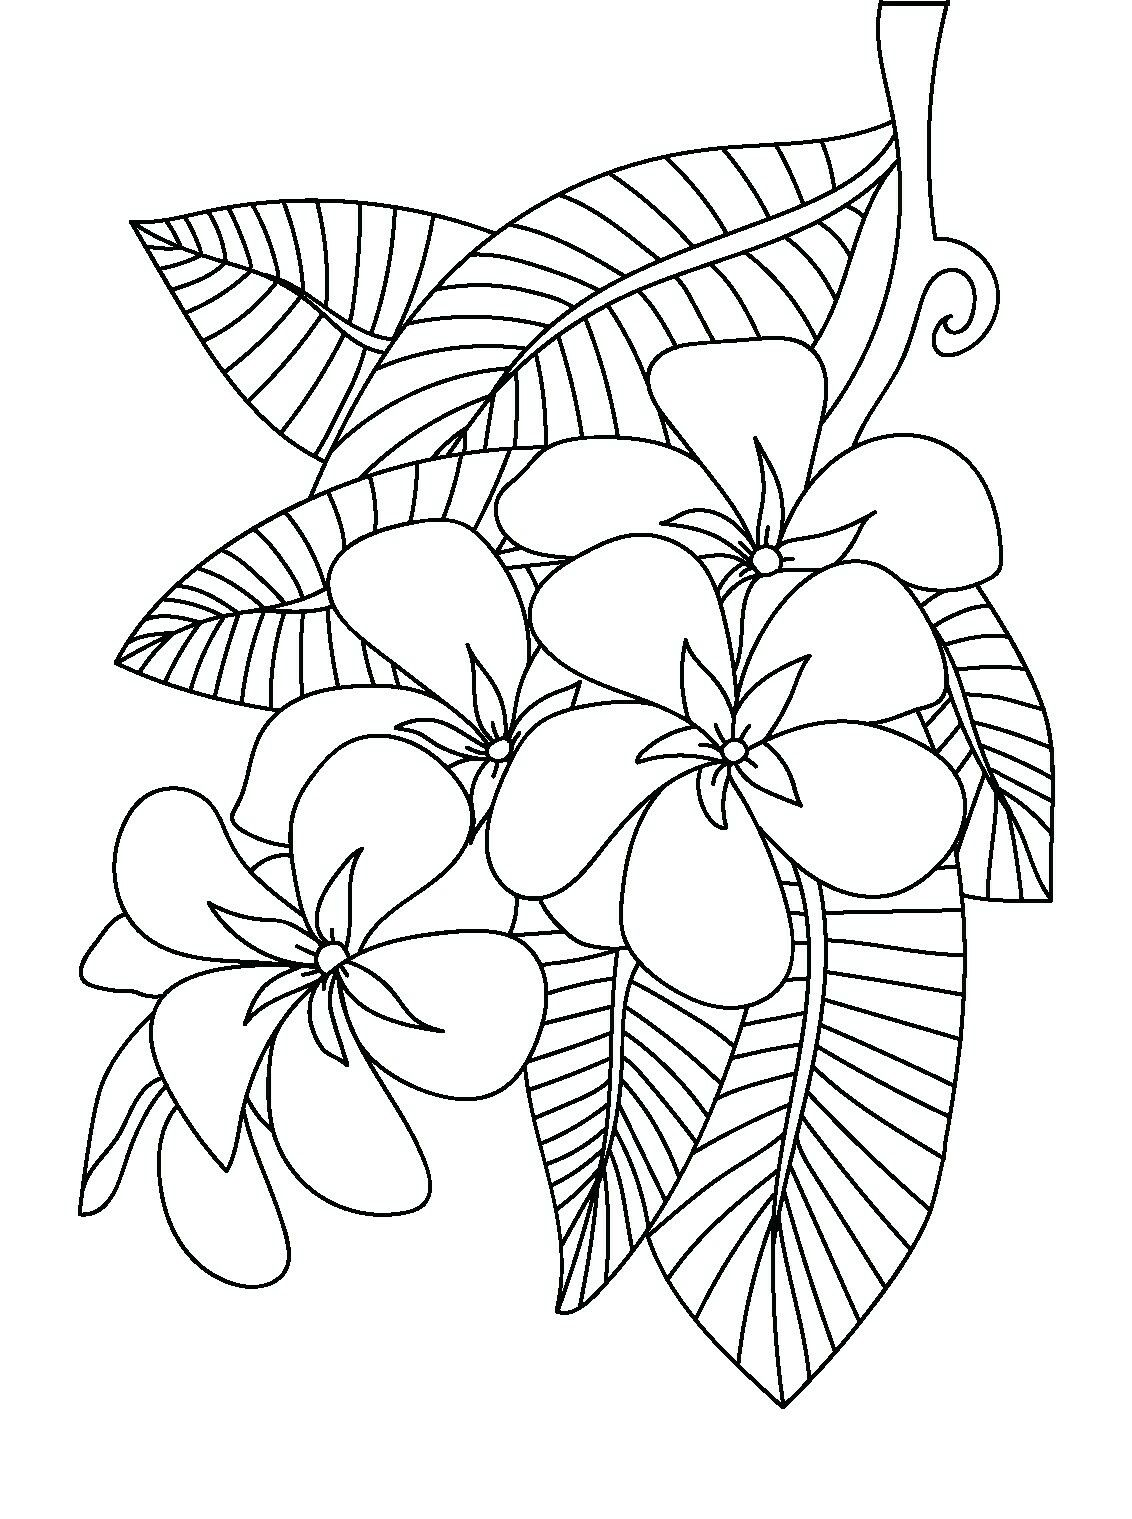 Frangipani Coloring Page Coloring Pages Inspirational Coloring